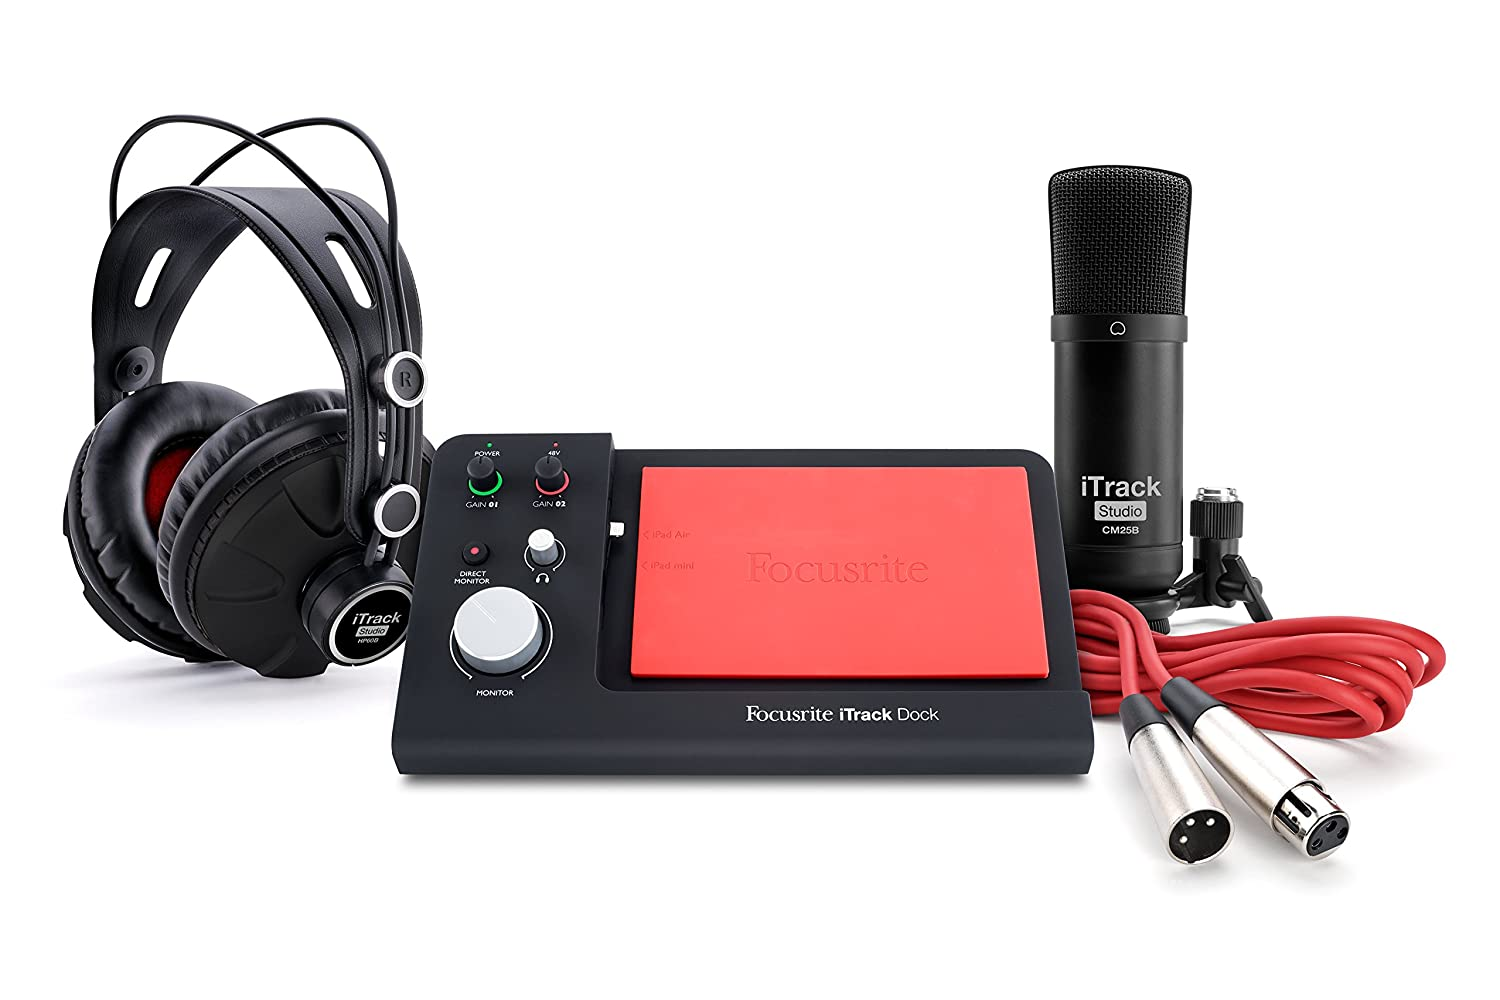 купить Focusrite iTrack Dock Studio Pack for Lightning-Compatible iPad Including Dock, Condenser Microphone, Headphones and XLR Cable недорого